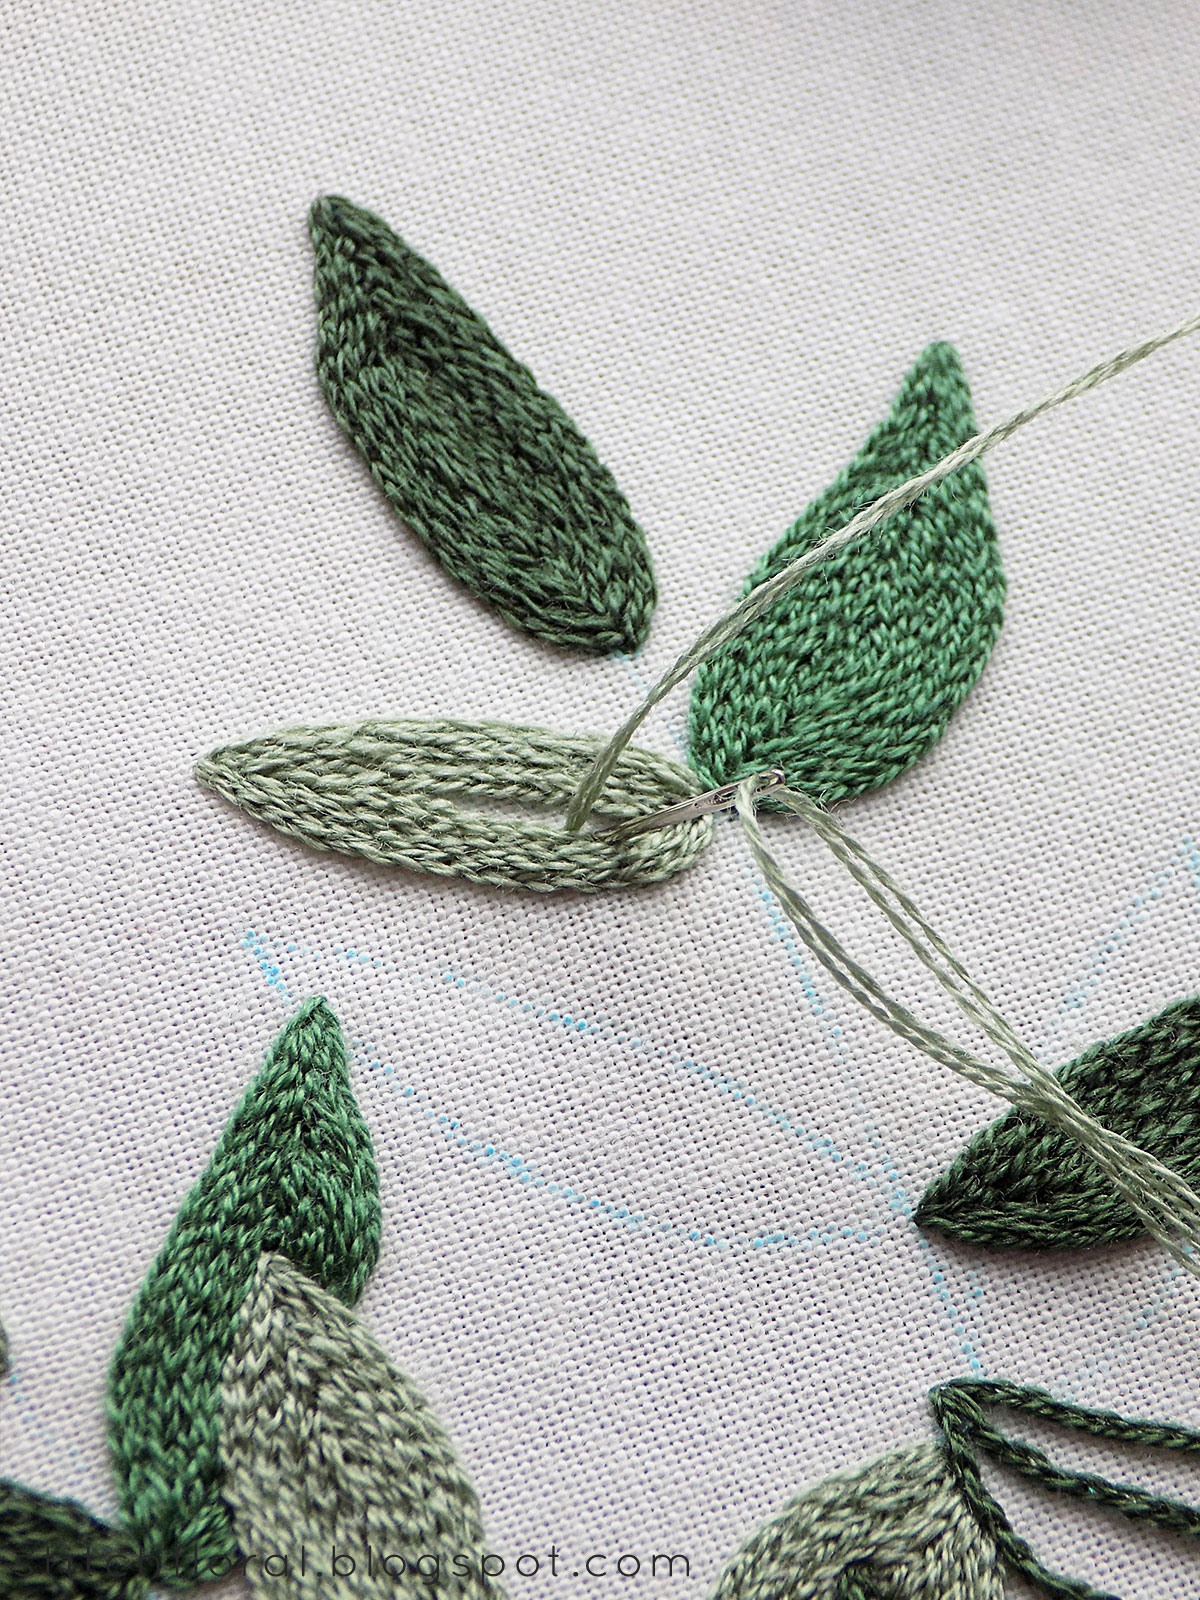 20 basic stitches for hand embroidery   Stitch Floral